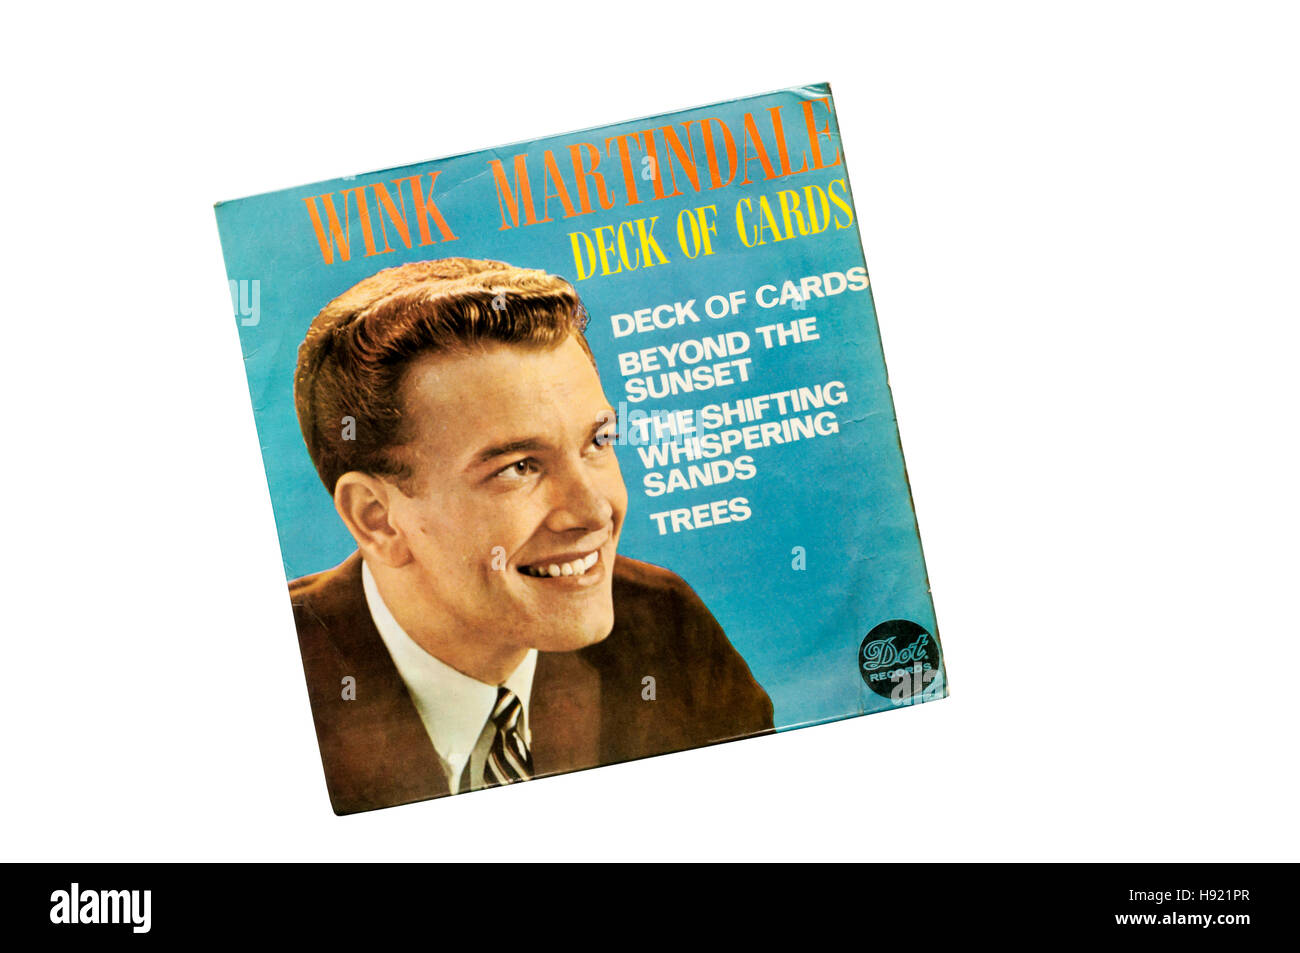 EP of Deck of Cards by American DJ and game show host Wink Martindale.  Released in 1959 by Dot Records. - Stock Image